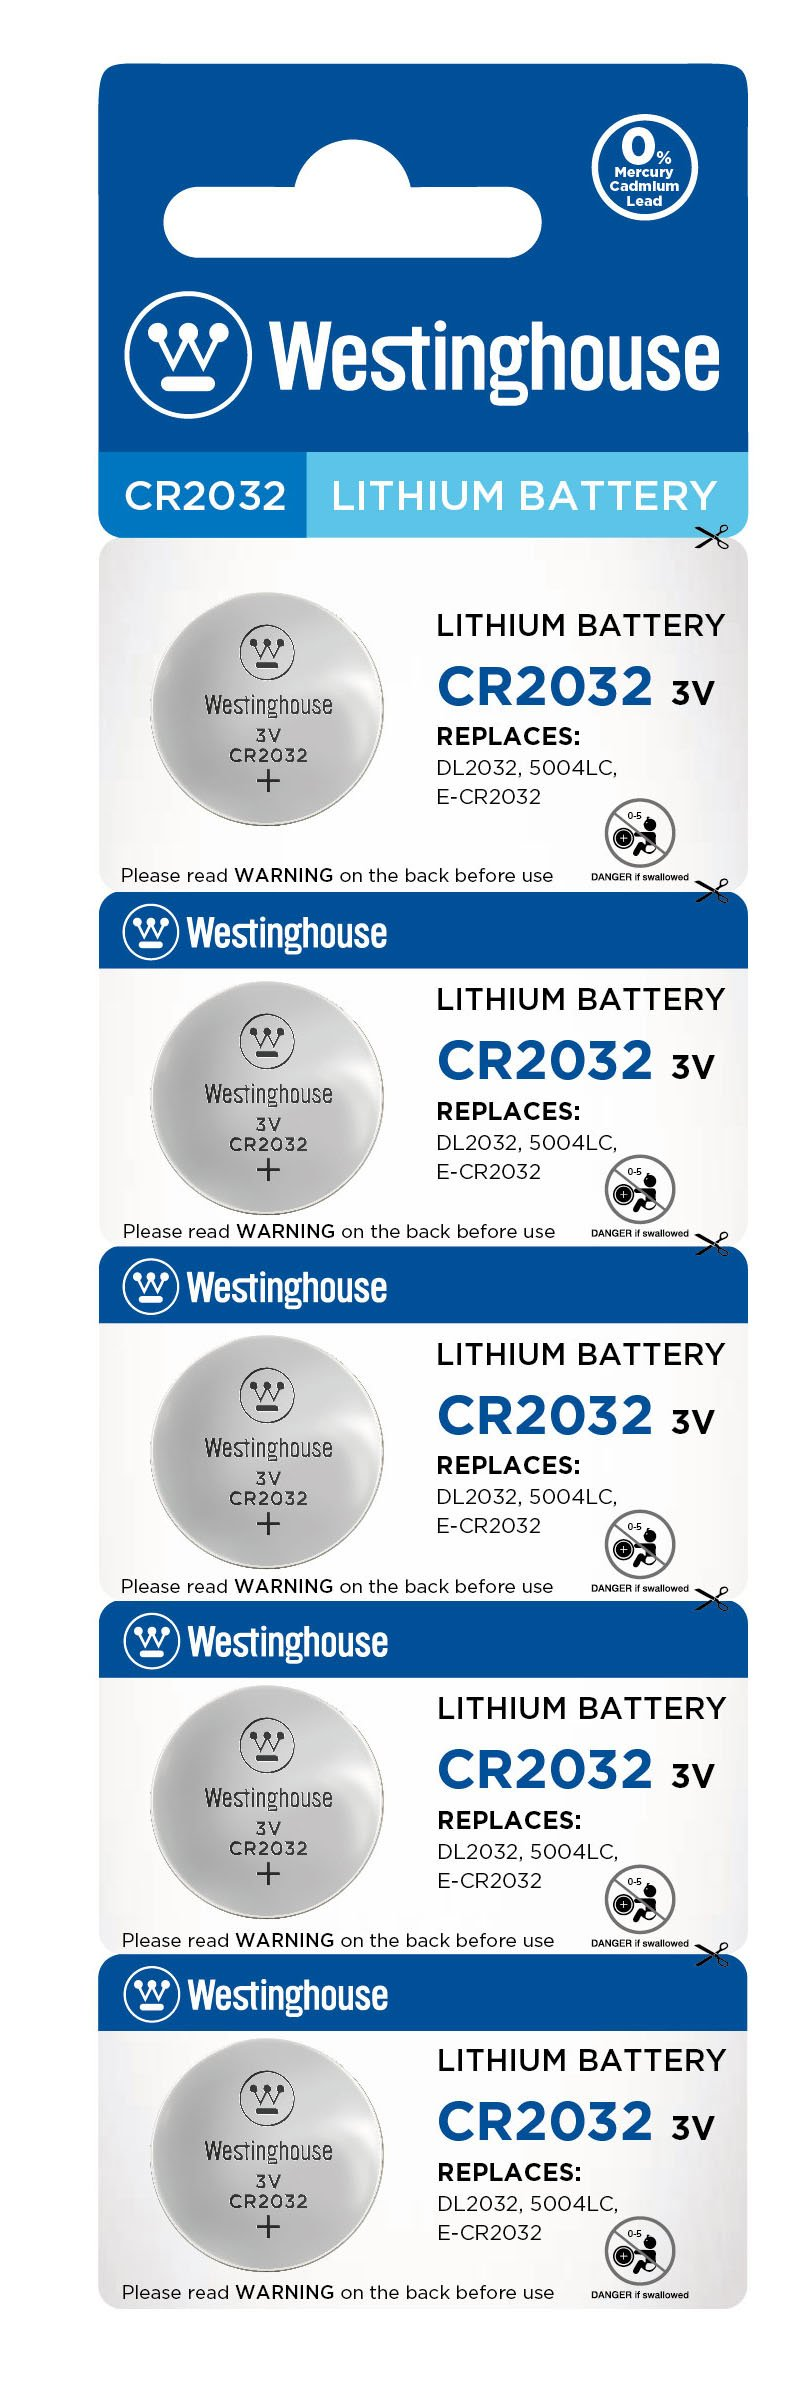 Westinghouse CR2032 3V Lithium Coin Cell Battery 5pk